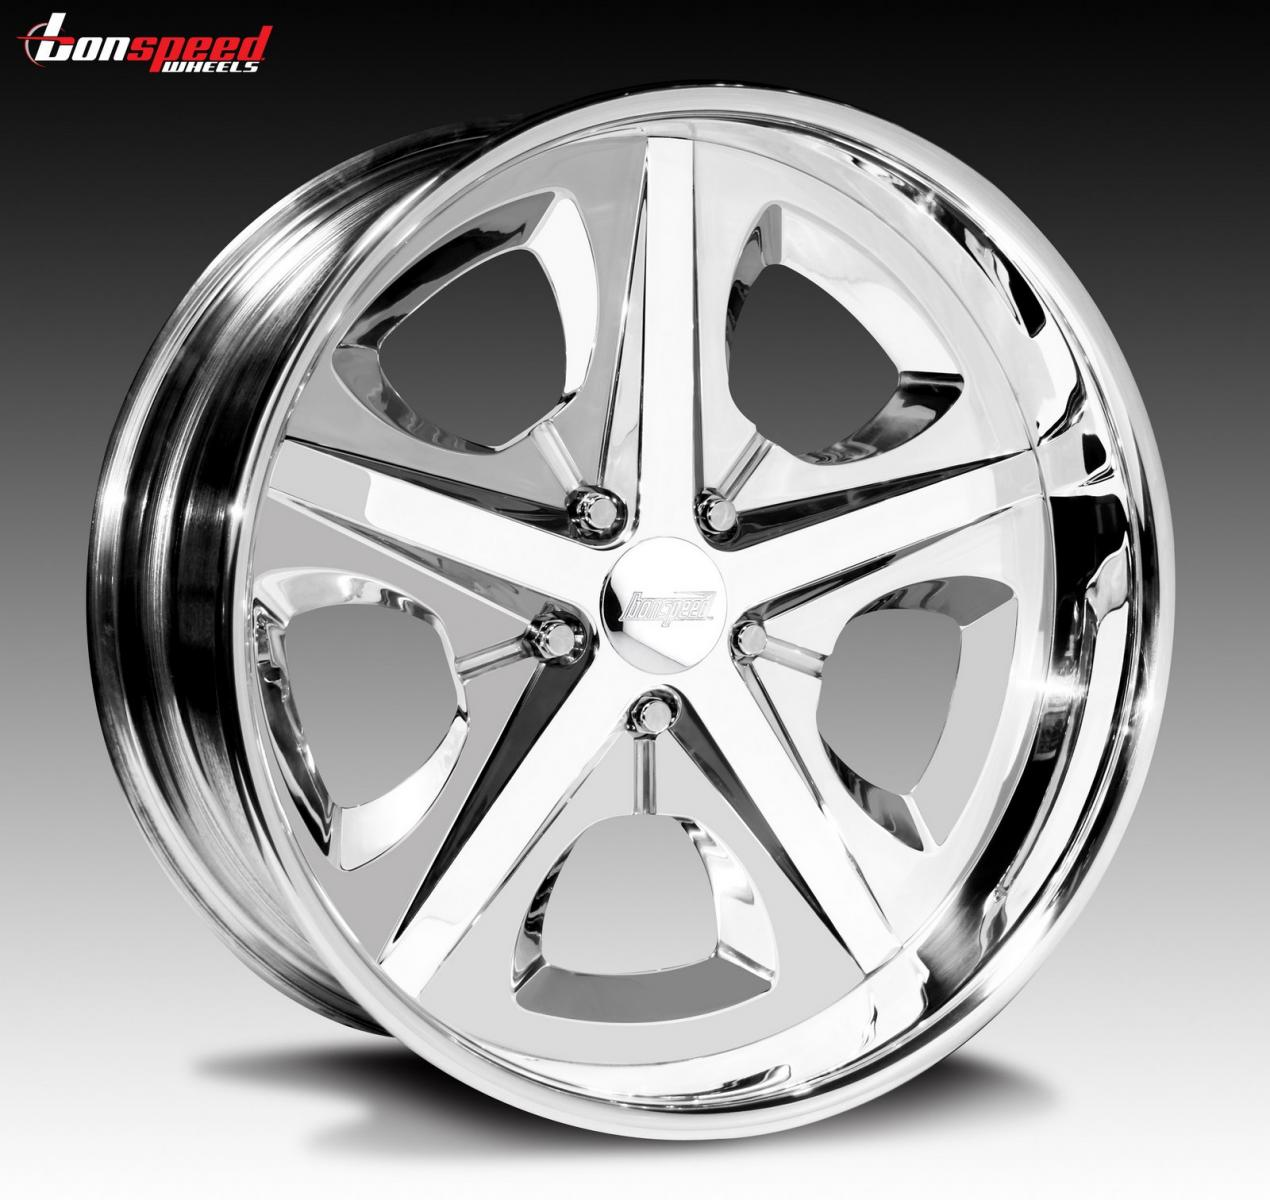 Bonspeed Wheels Vintage Styles